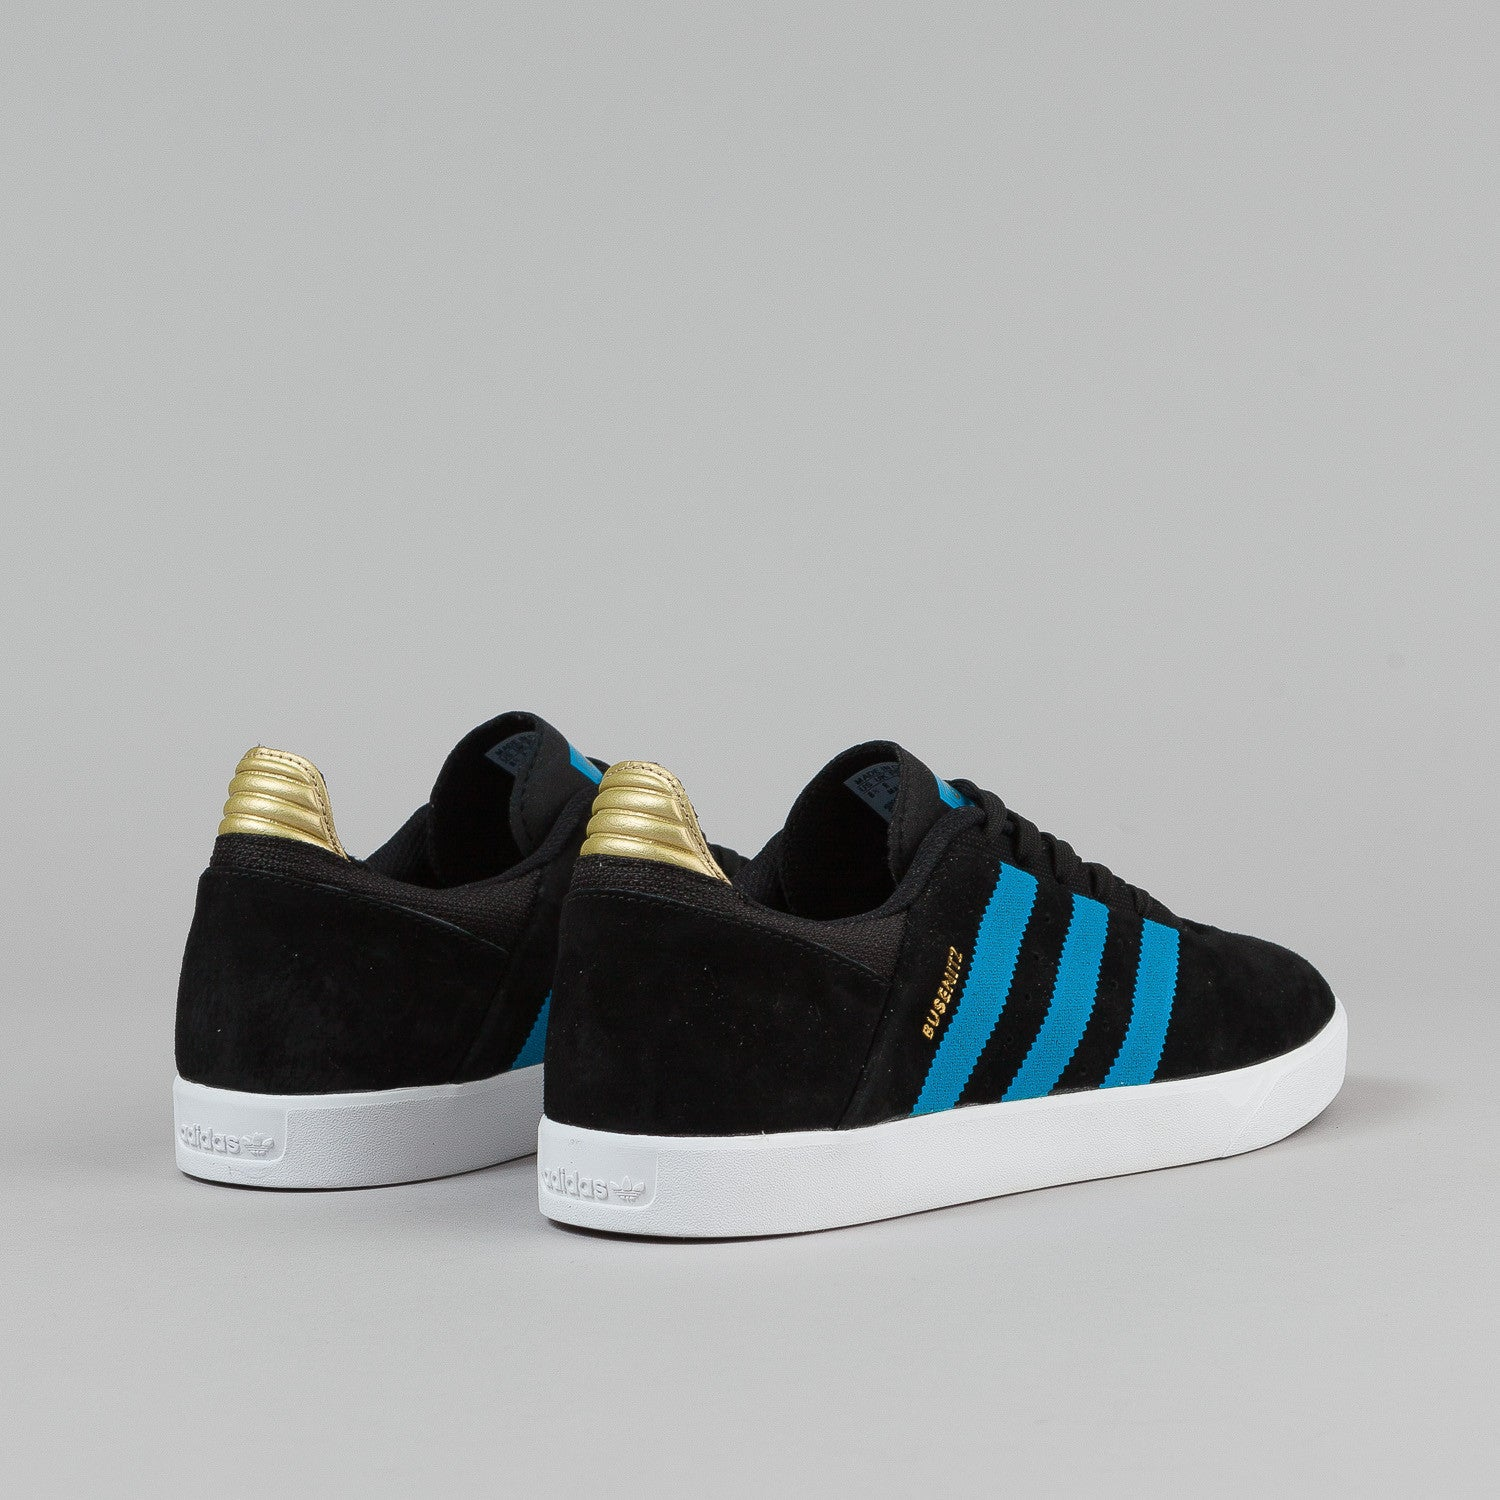 Adidas Busenitz Adv Shoes - Black / Solar Blue / Metallic Gold